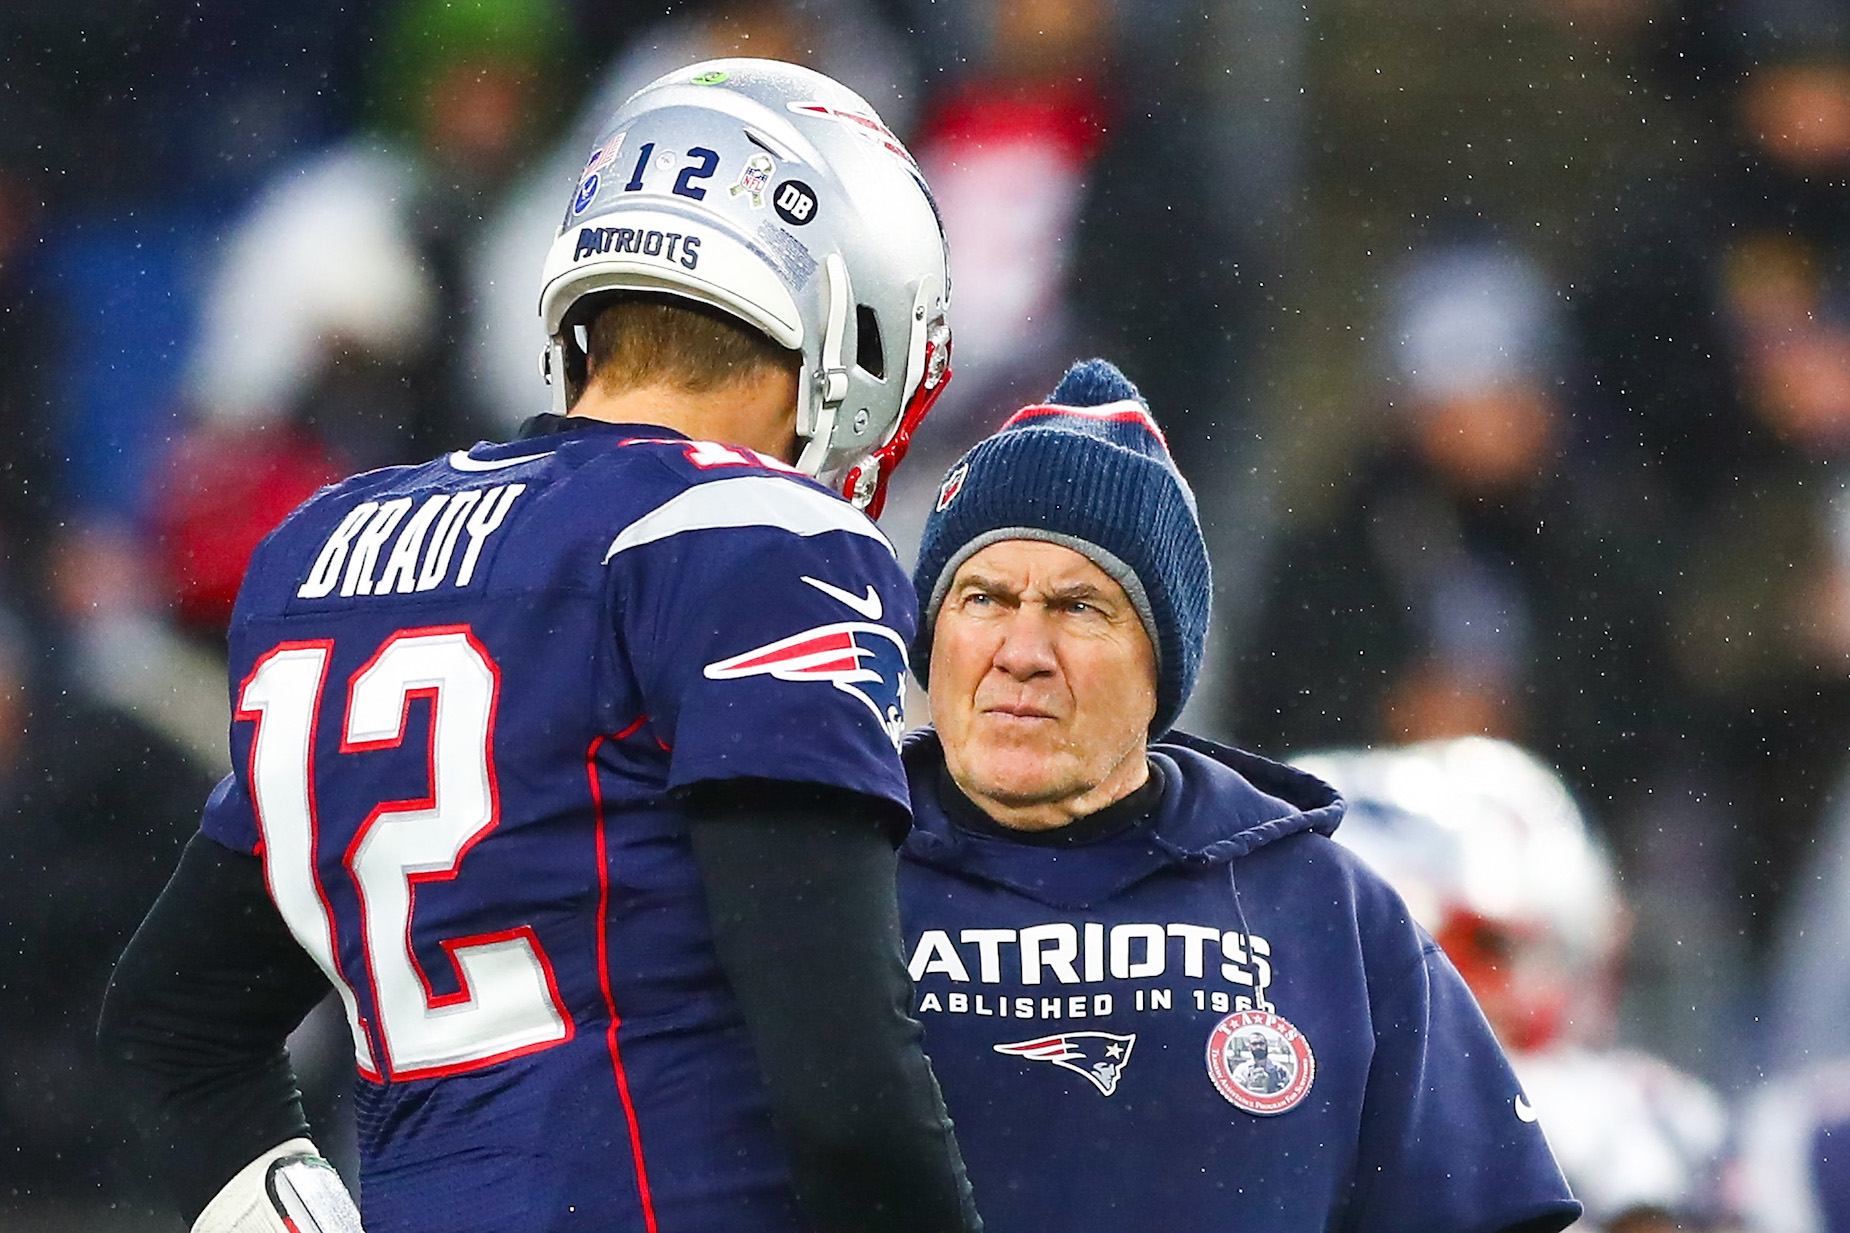 While Tom Brady and Bill Belichick teamed up to win six Super Bowl titles, the coach wasn't afraid to call out his quarterback behind the scenes.